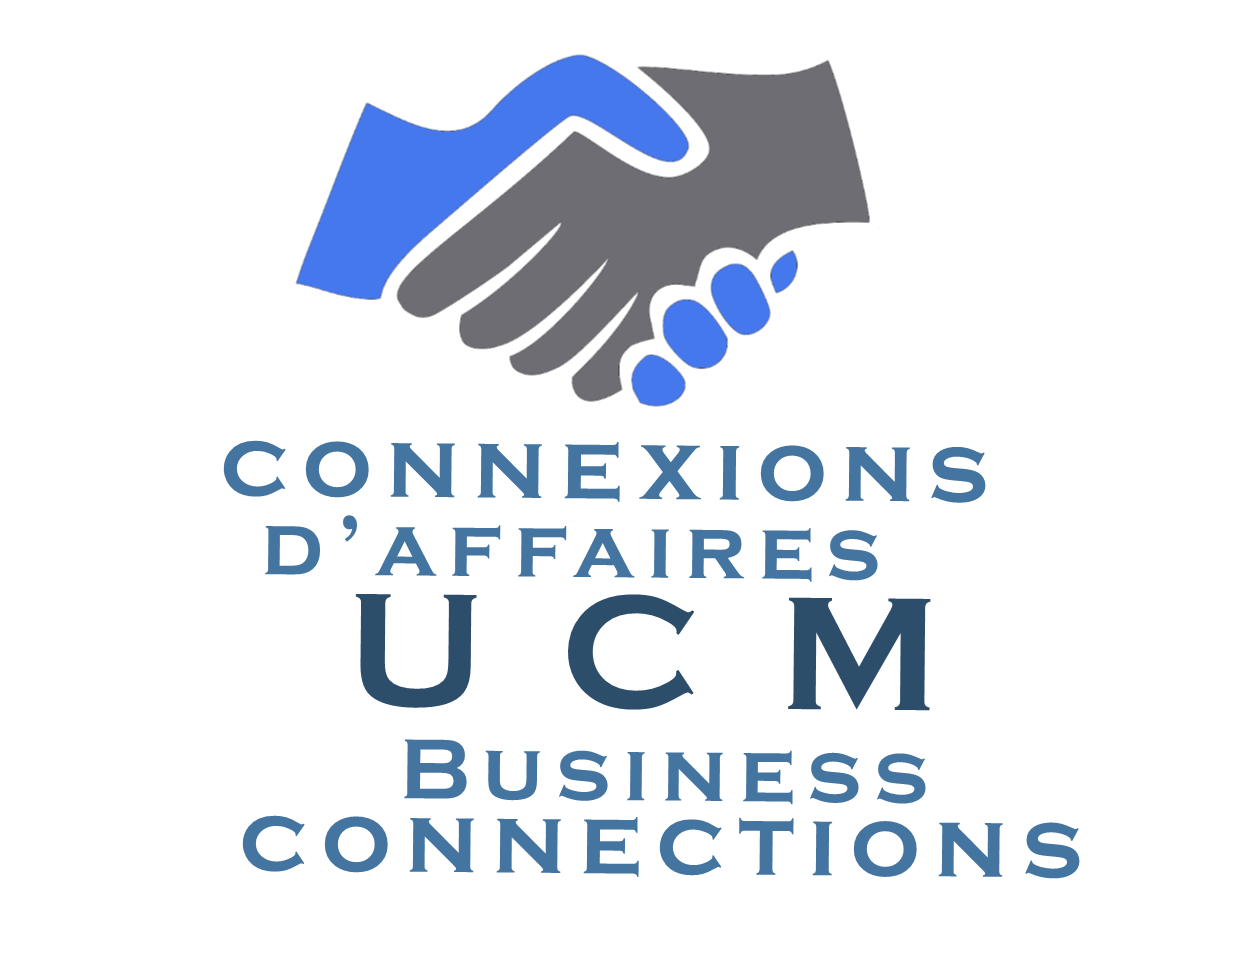 *** NEW: UCM Business Connections - My Club. My Business. (Breakfast)